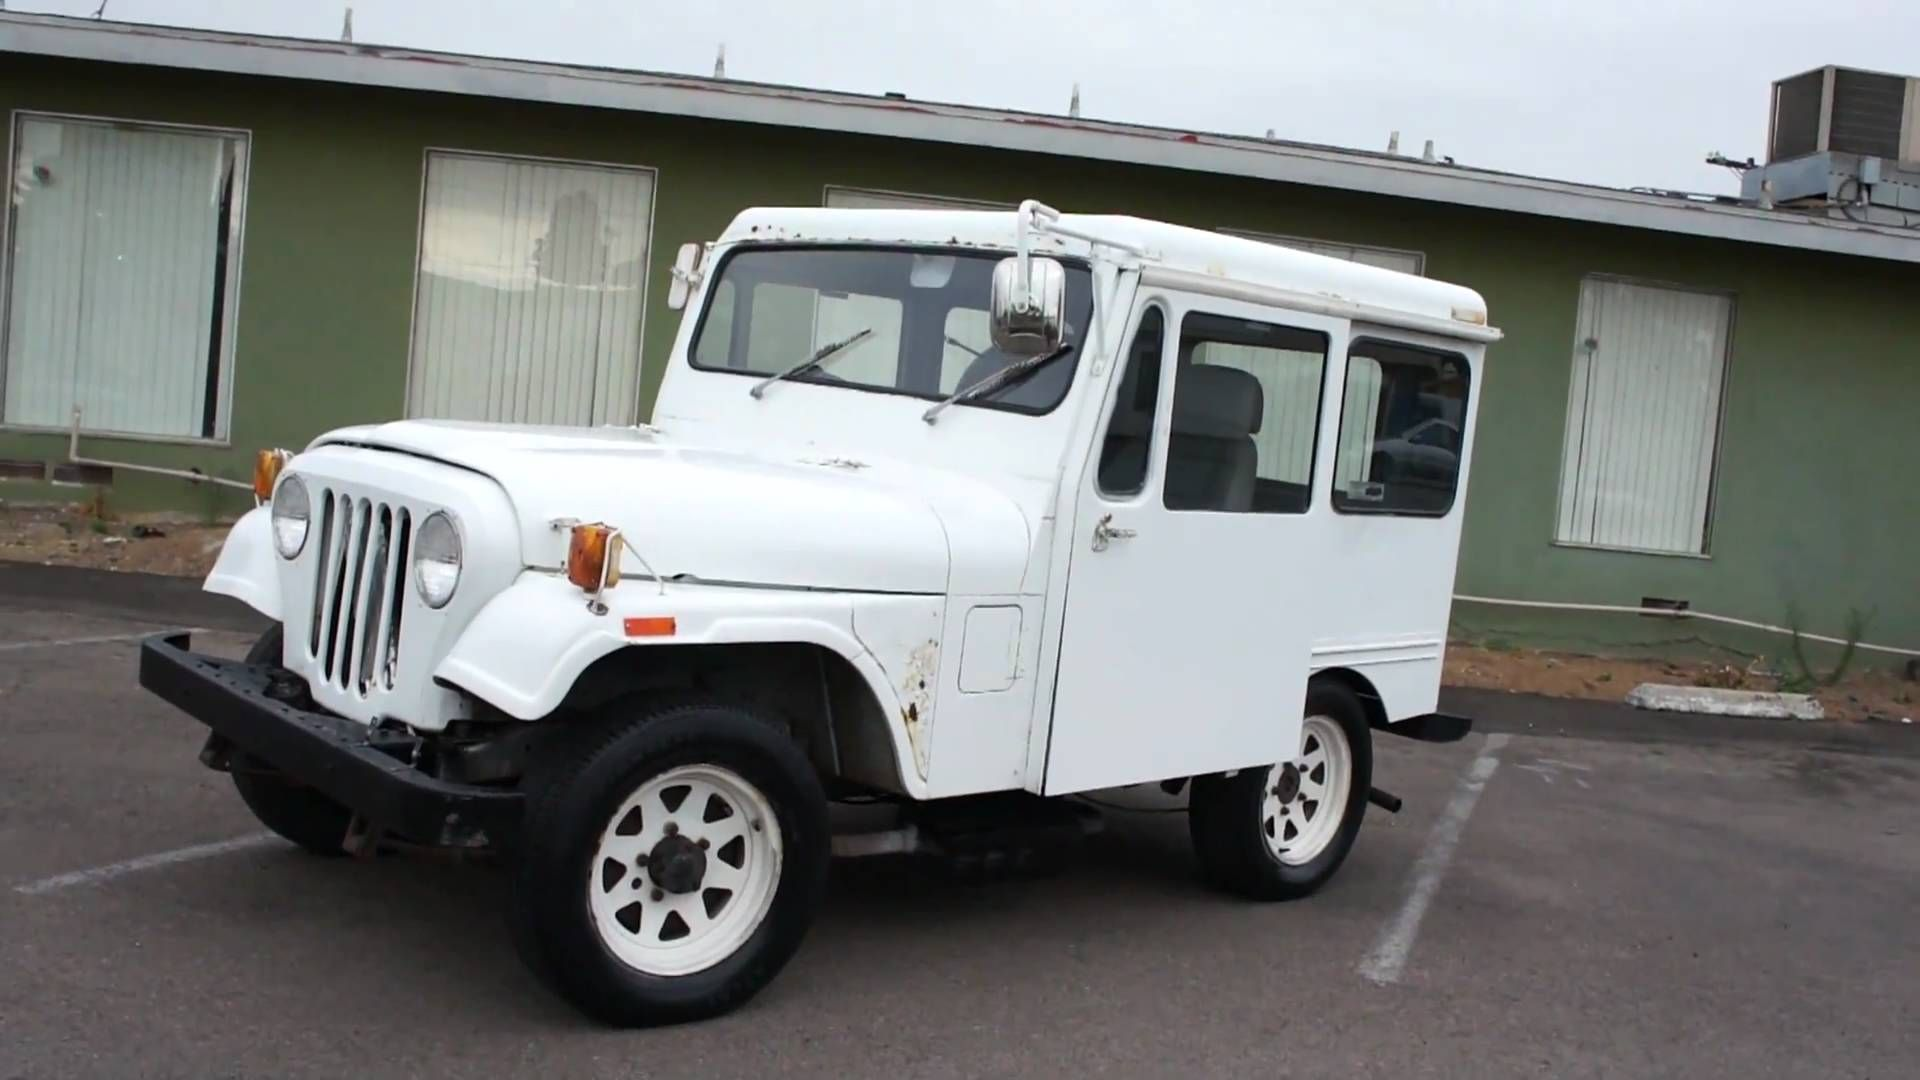 classic willys postal jeep google search old cars boats plains trains pinterest jeep. Black Bedroom Furniture Sets. Home Design Ideas